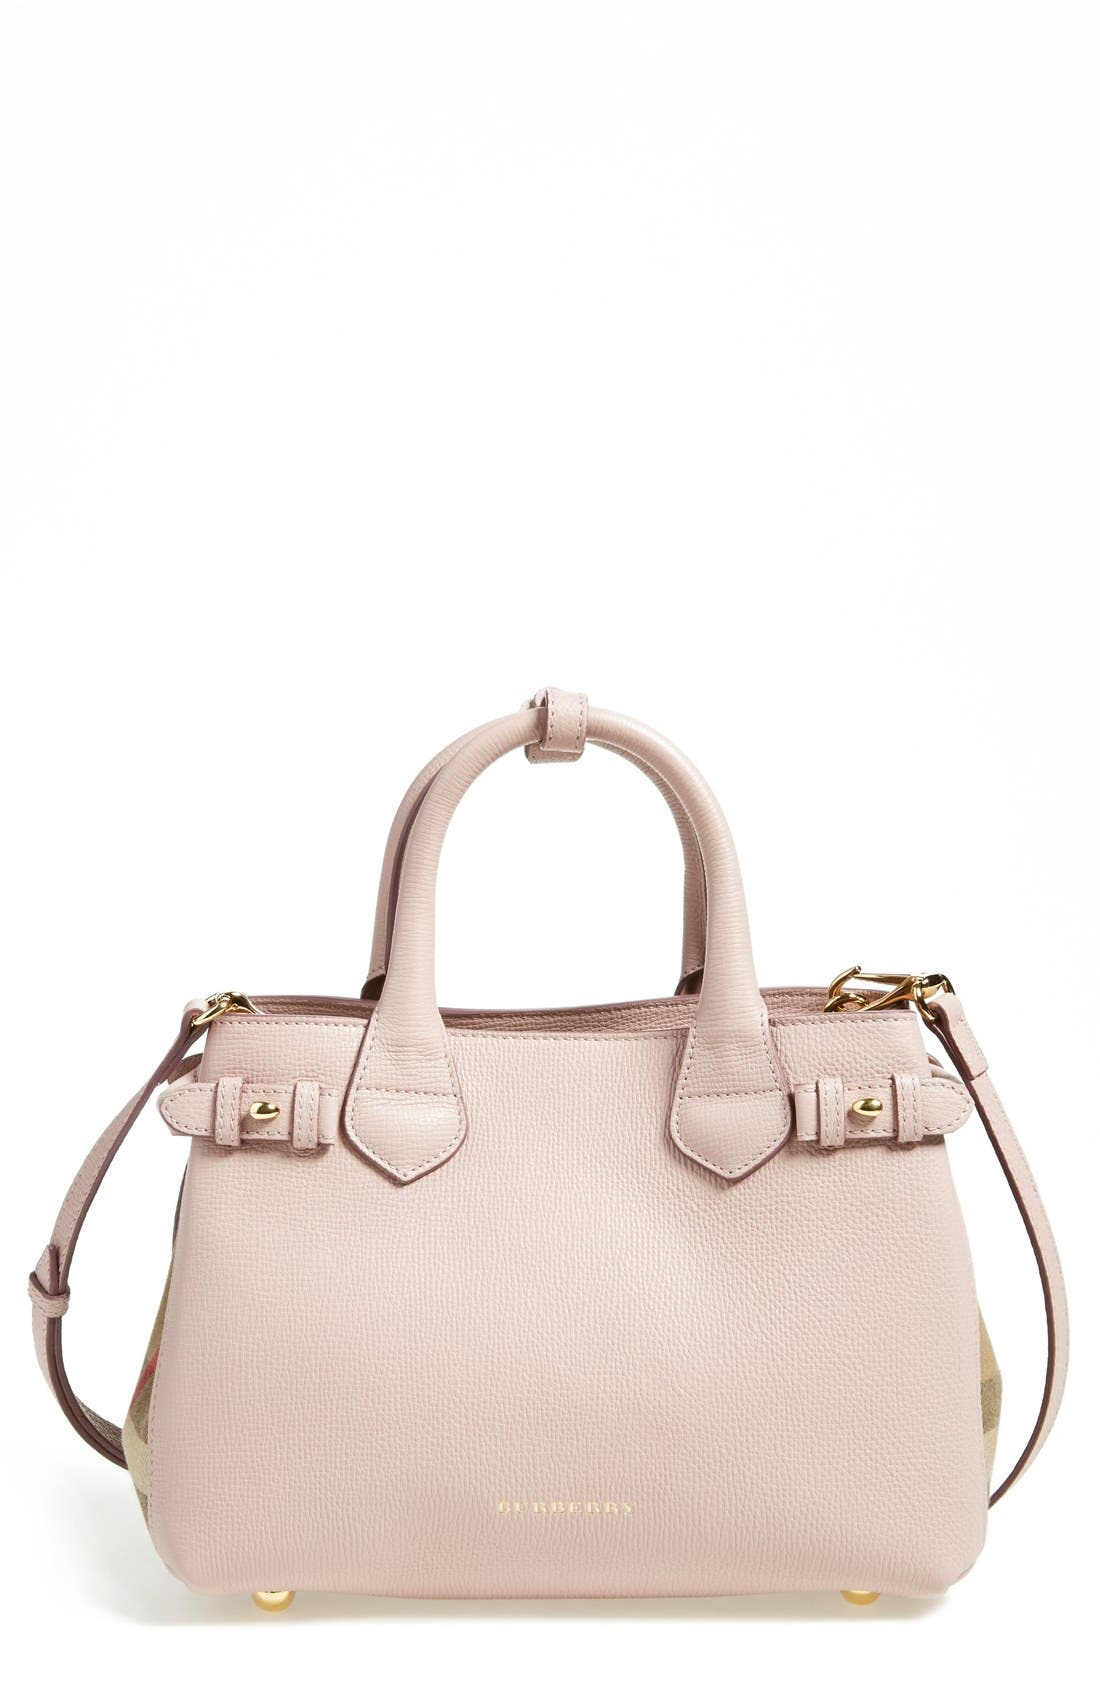 Main Image - Burberry 'Small Banner' Leather Tote